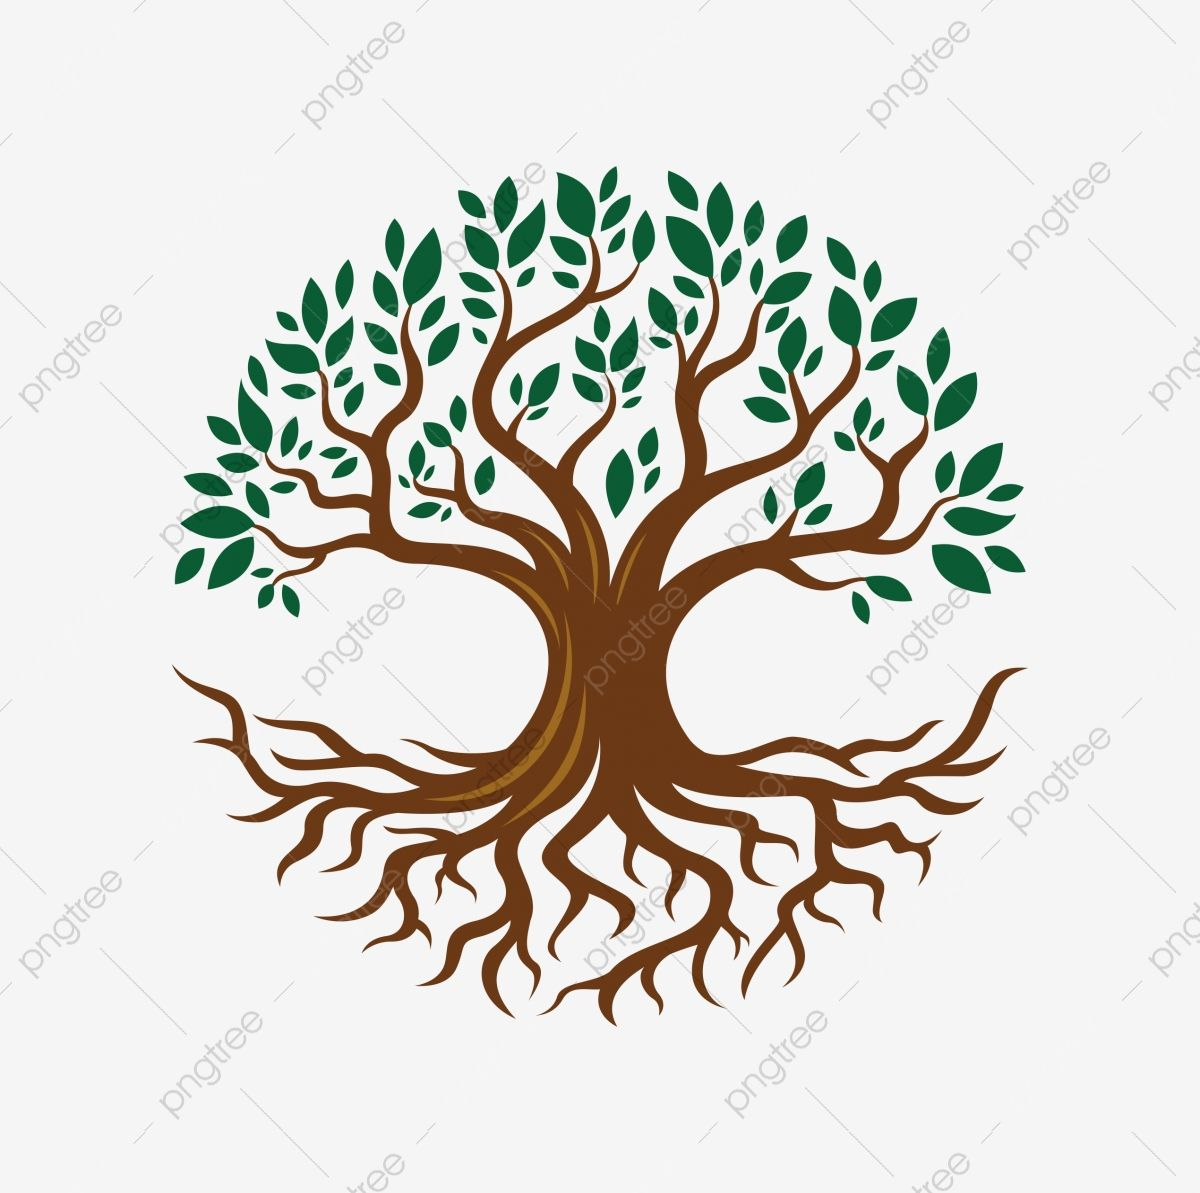 Illustration Of Circular Tree Root Design Life Clipart Abstract Background Png And Vector With Transparent Background For Free Download Tree Drawing Tree Roots Free Vector Illustration